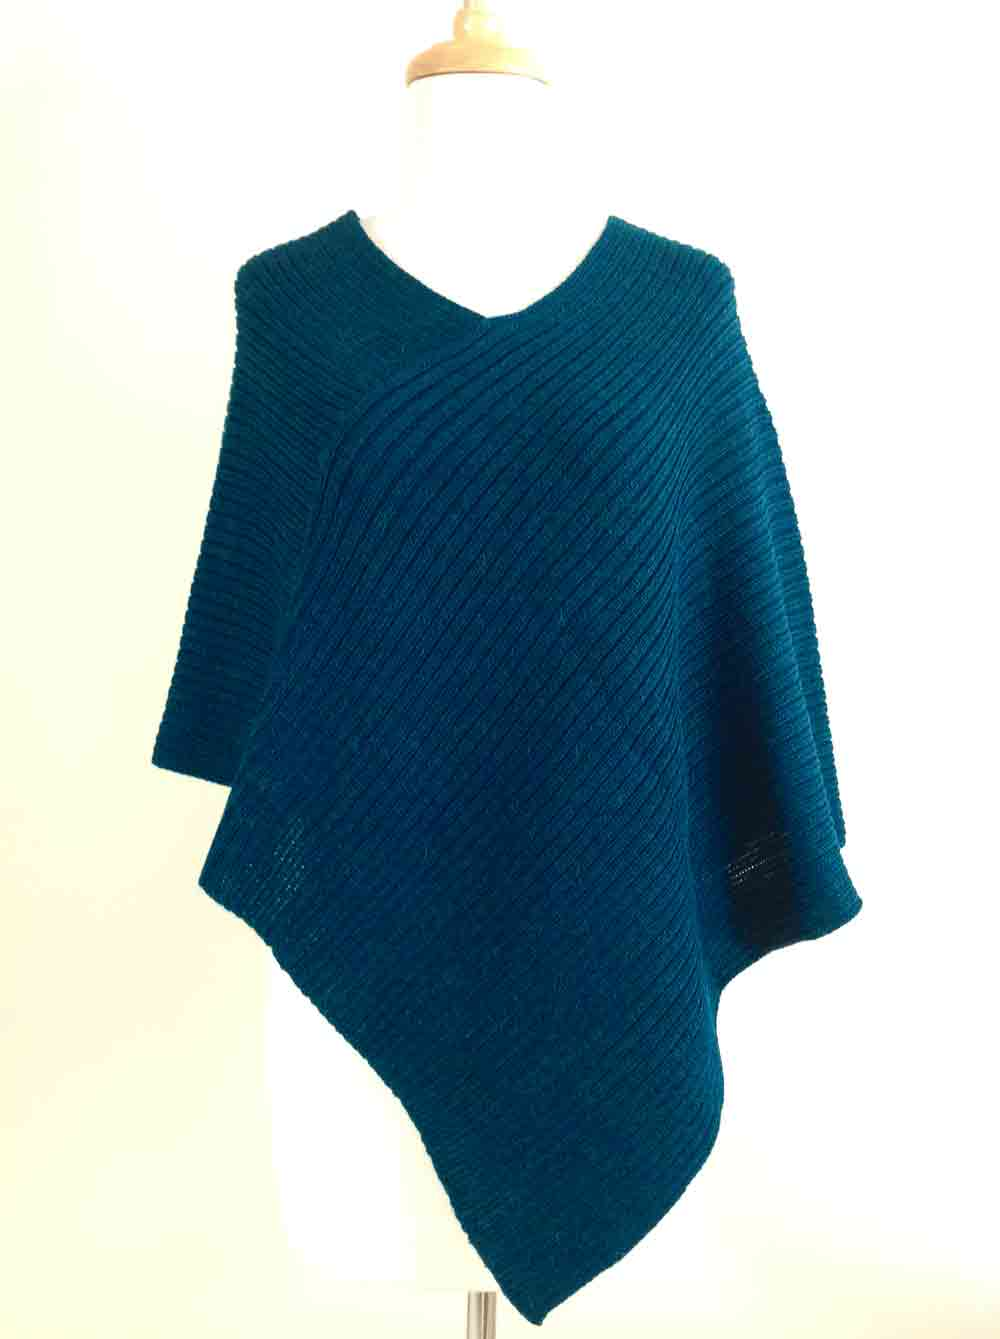 Ribbed Poncho - Teal